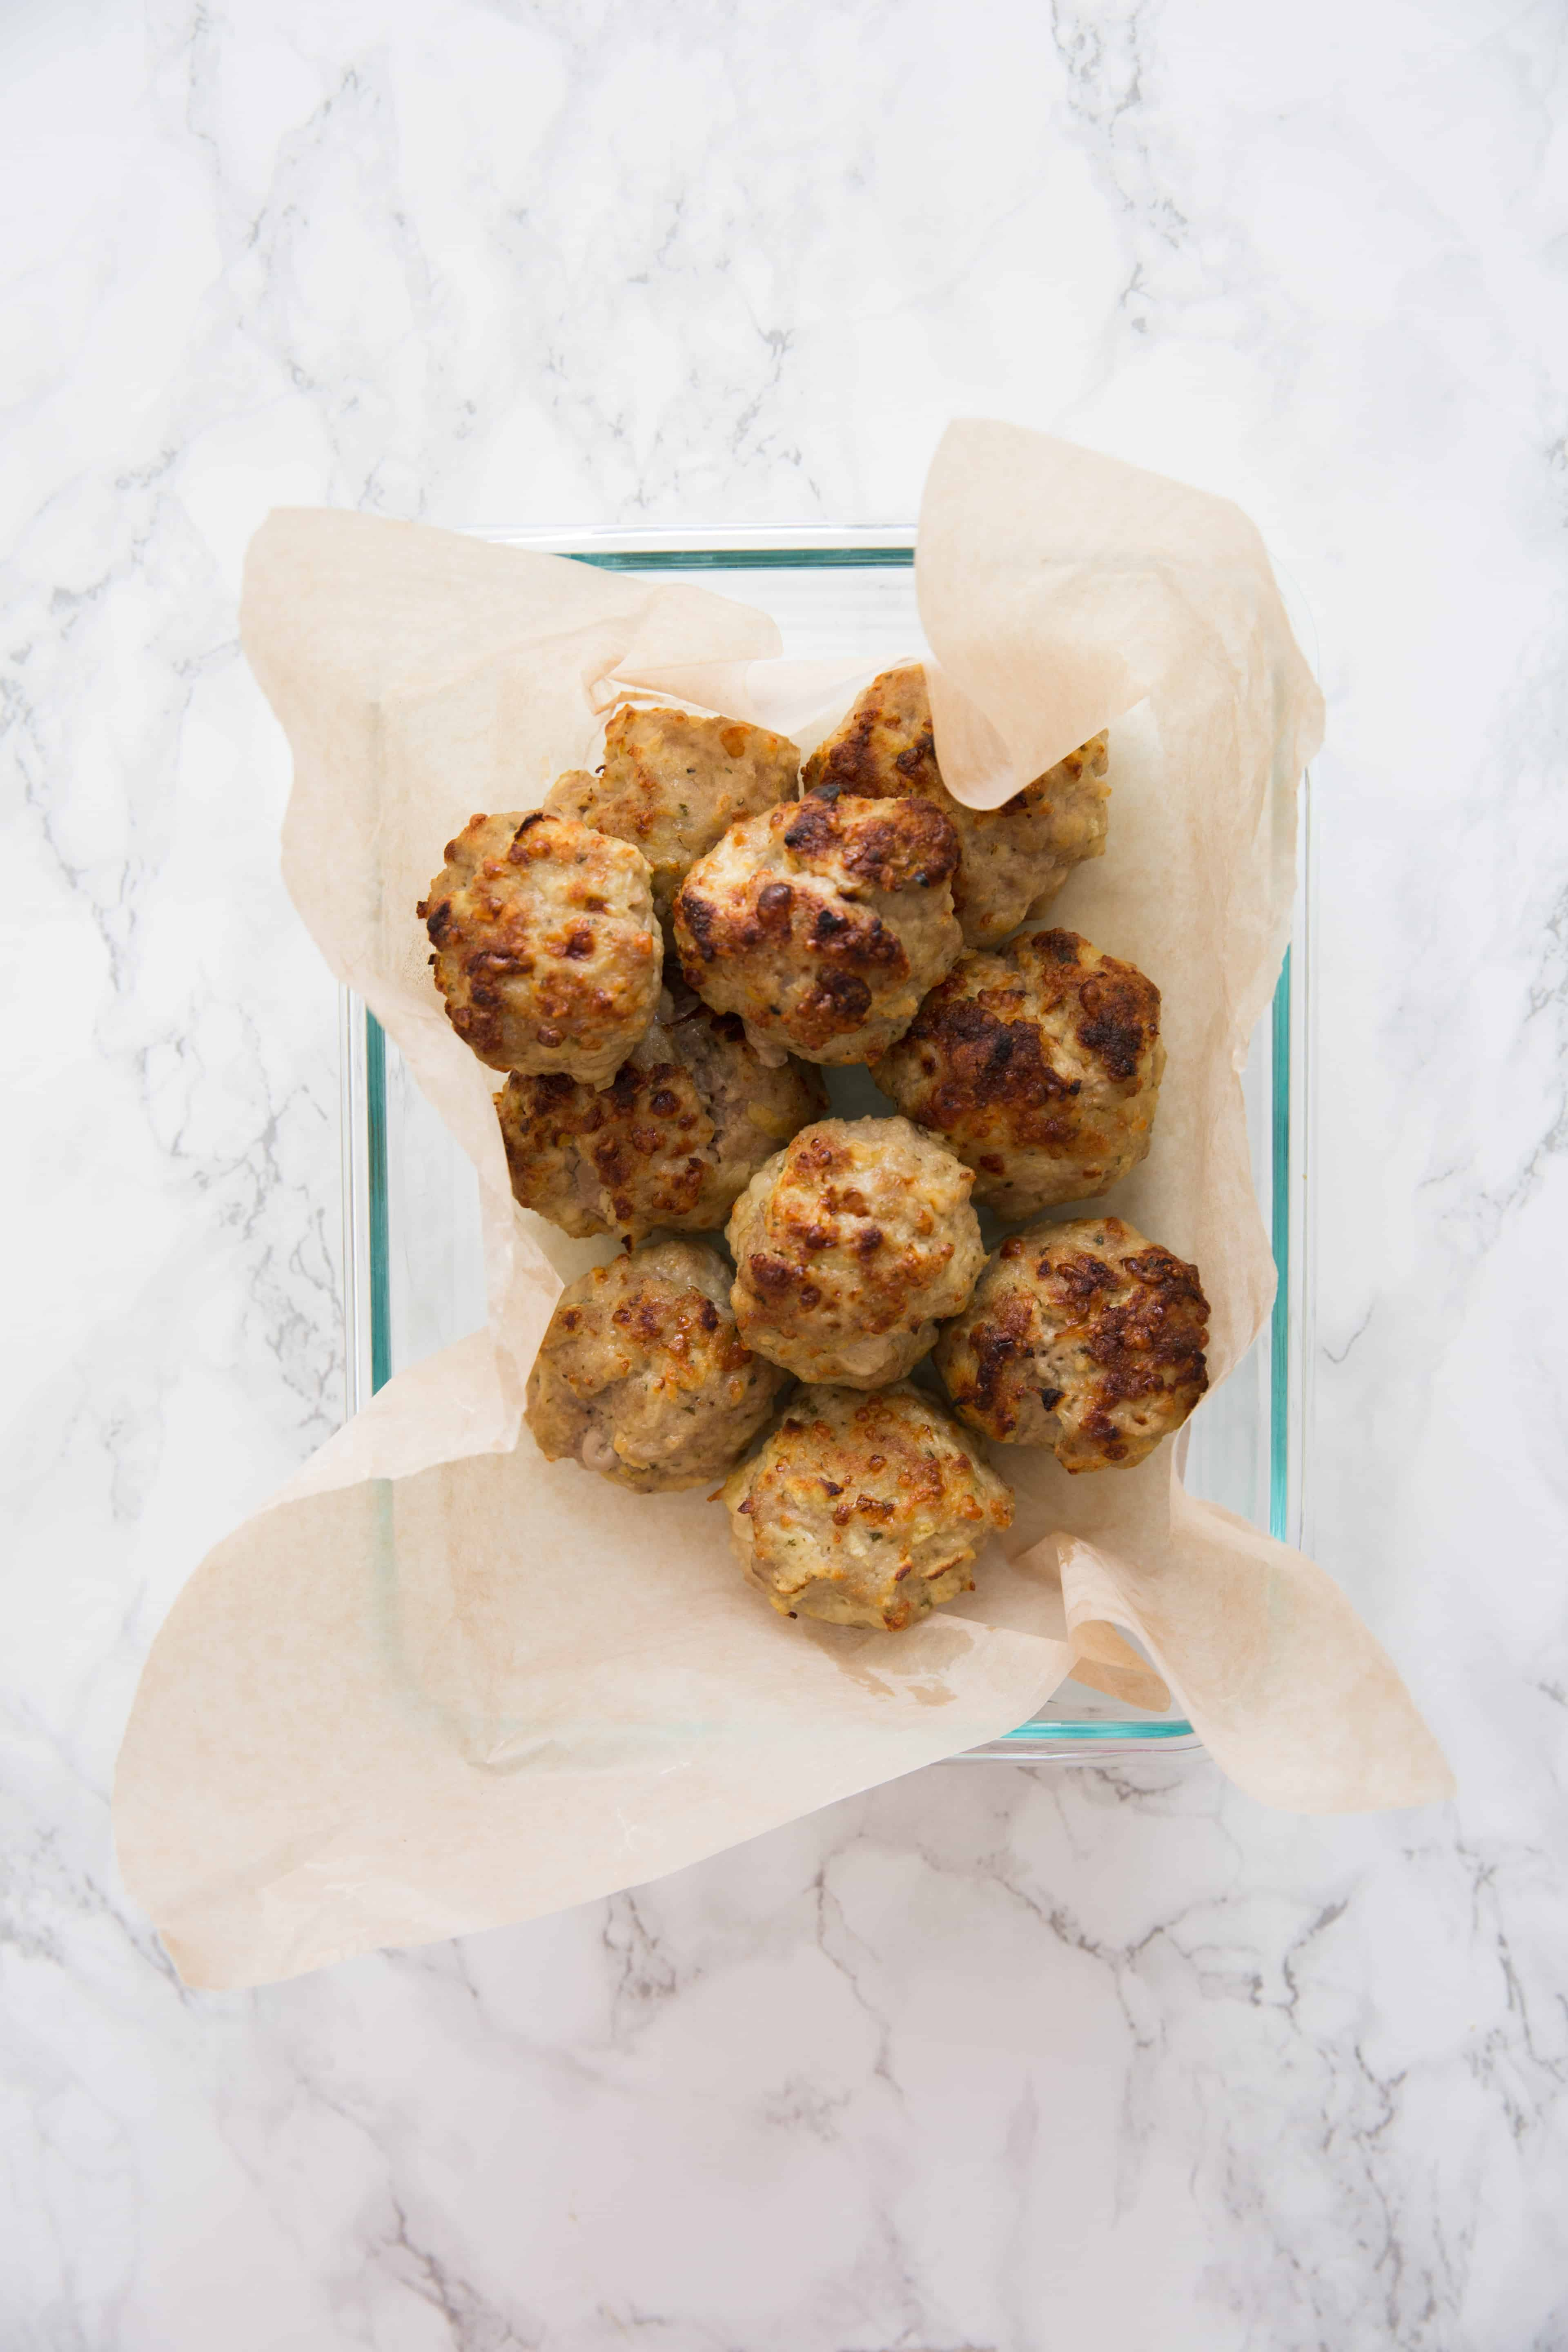 Gluten Free Pork, Apple and Cheddar Meatballs